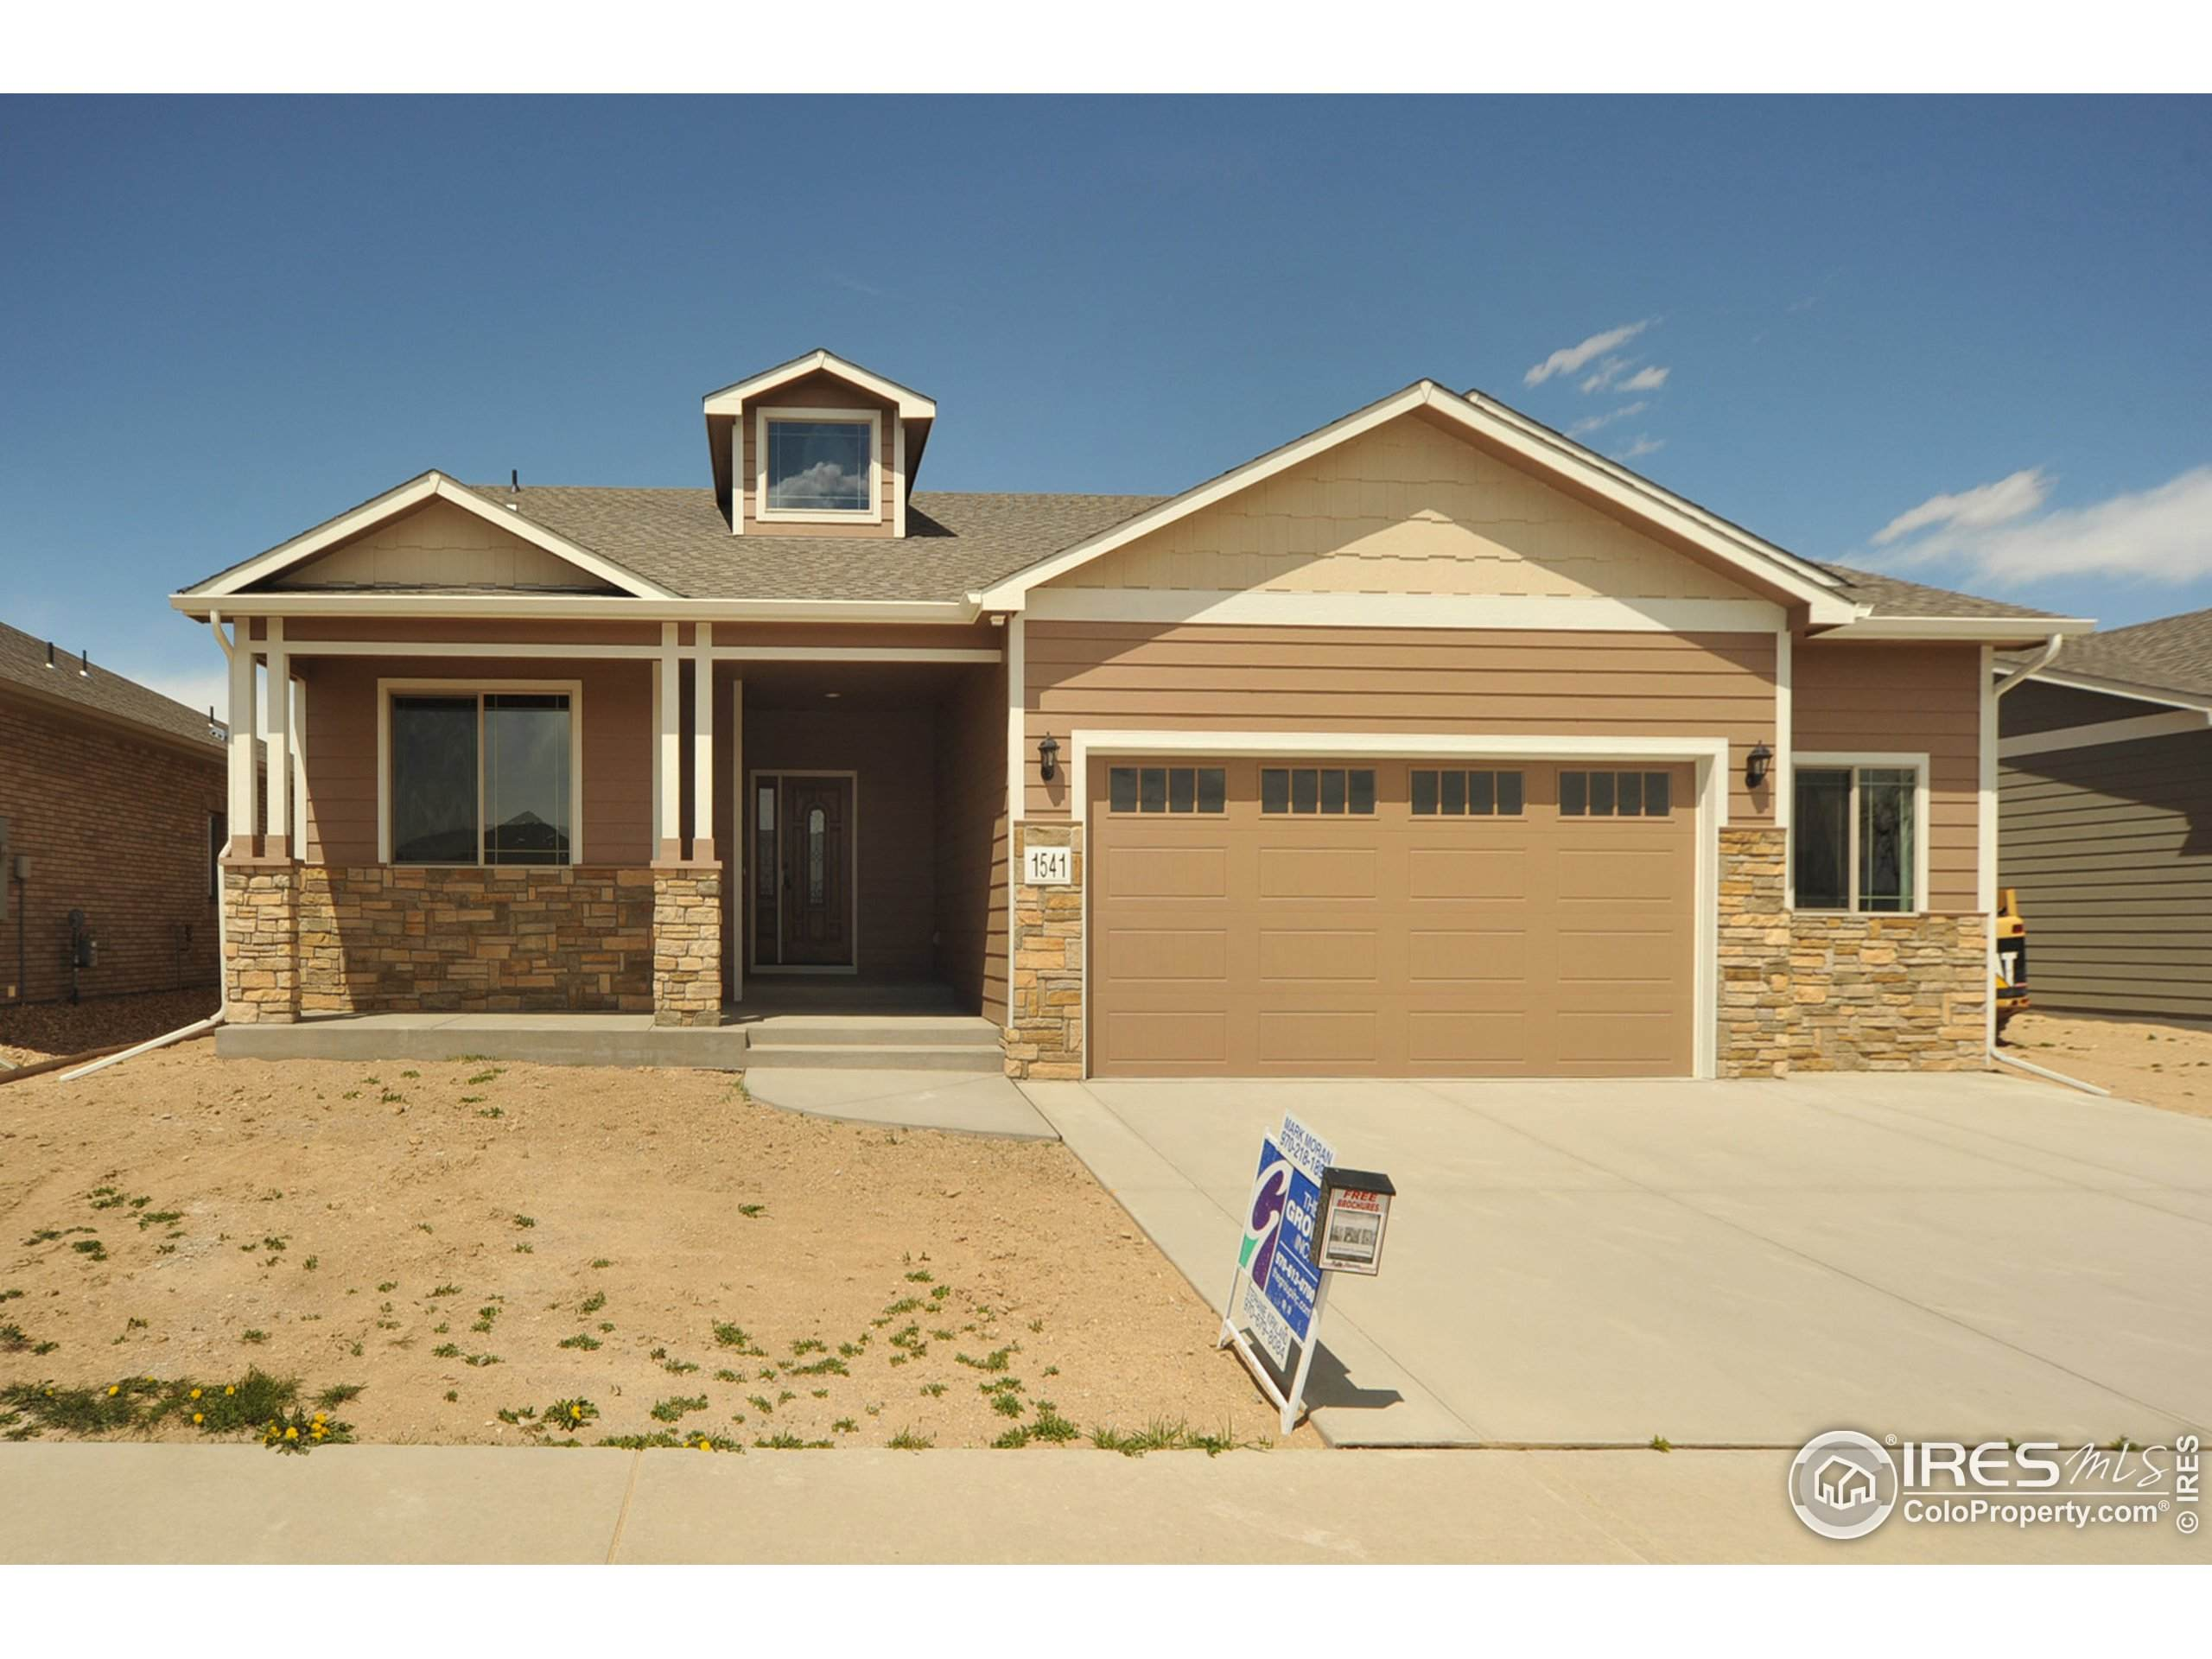 1998 Nicholson St, Berthoud, CO 80513 (MLS #941598) :: J2 Real Estate Group at Remax Alliance